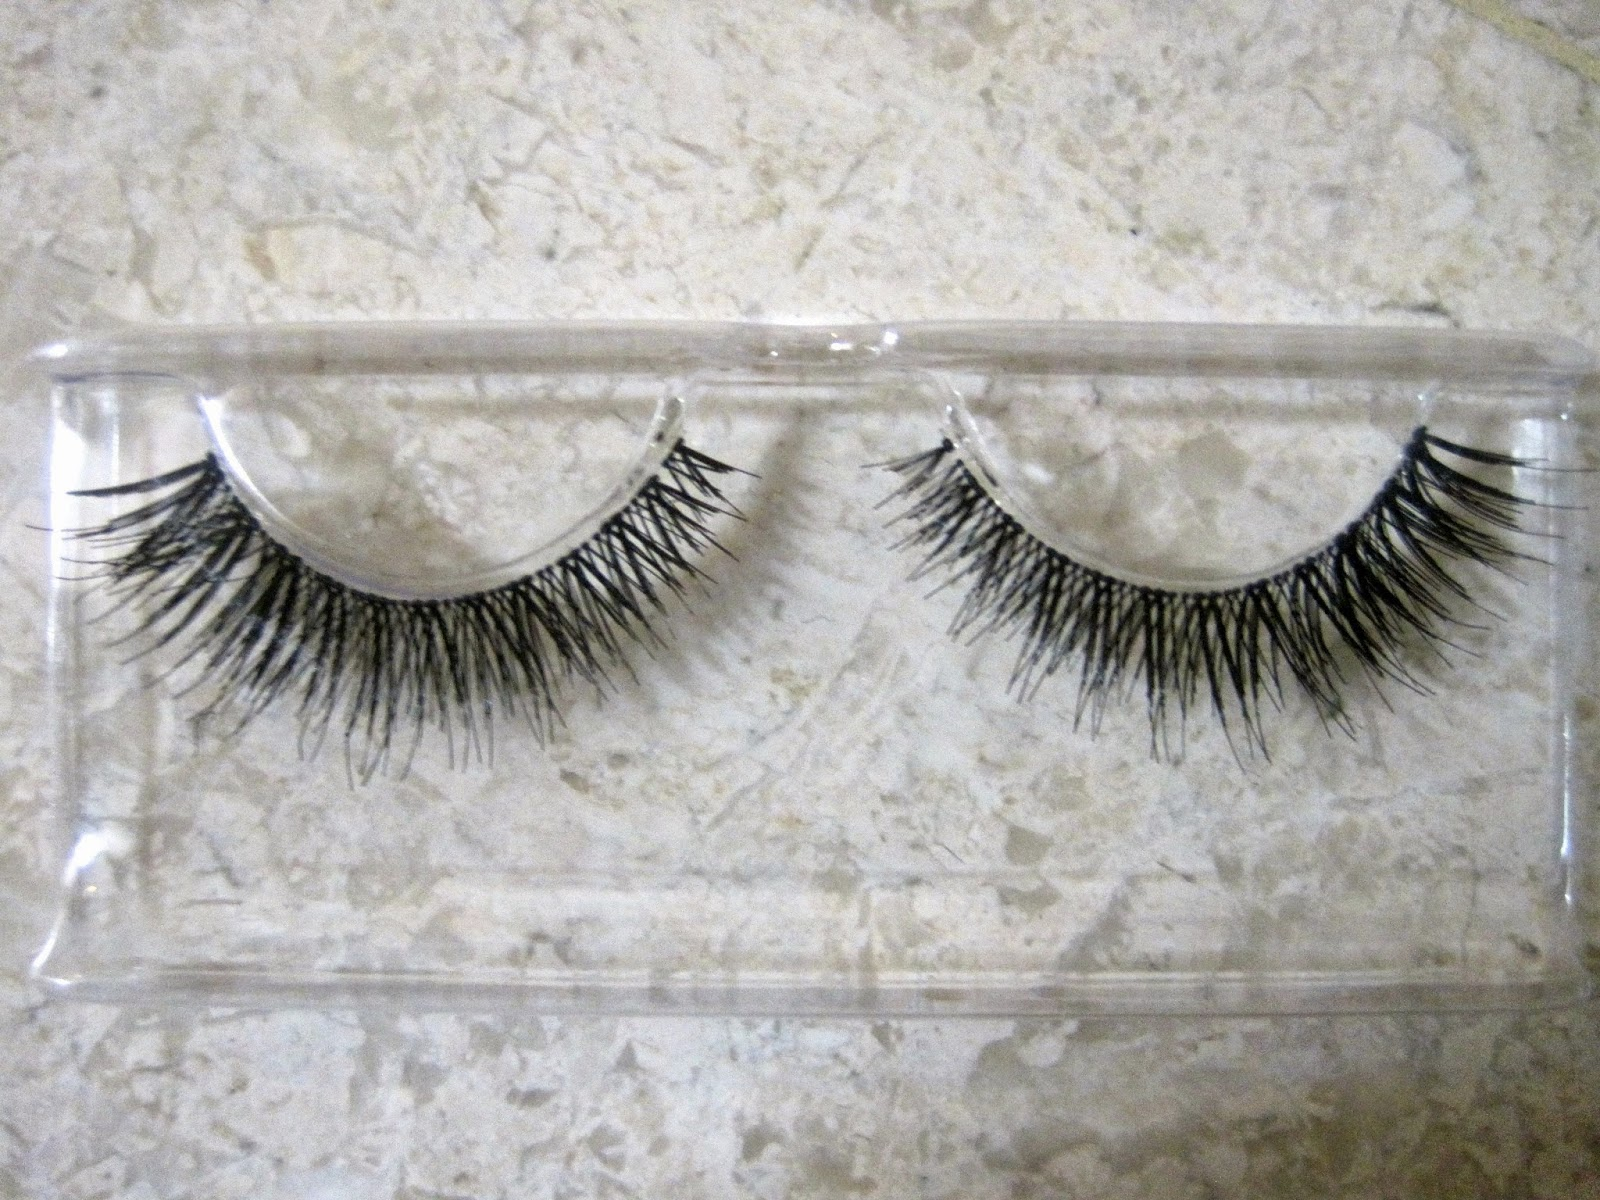 d4732108ee8 To Flawless: Review: Daiso False Eyelashes (6 different kinds with ...